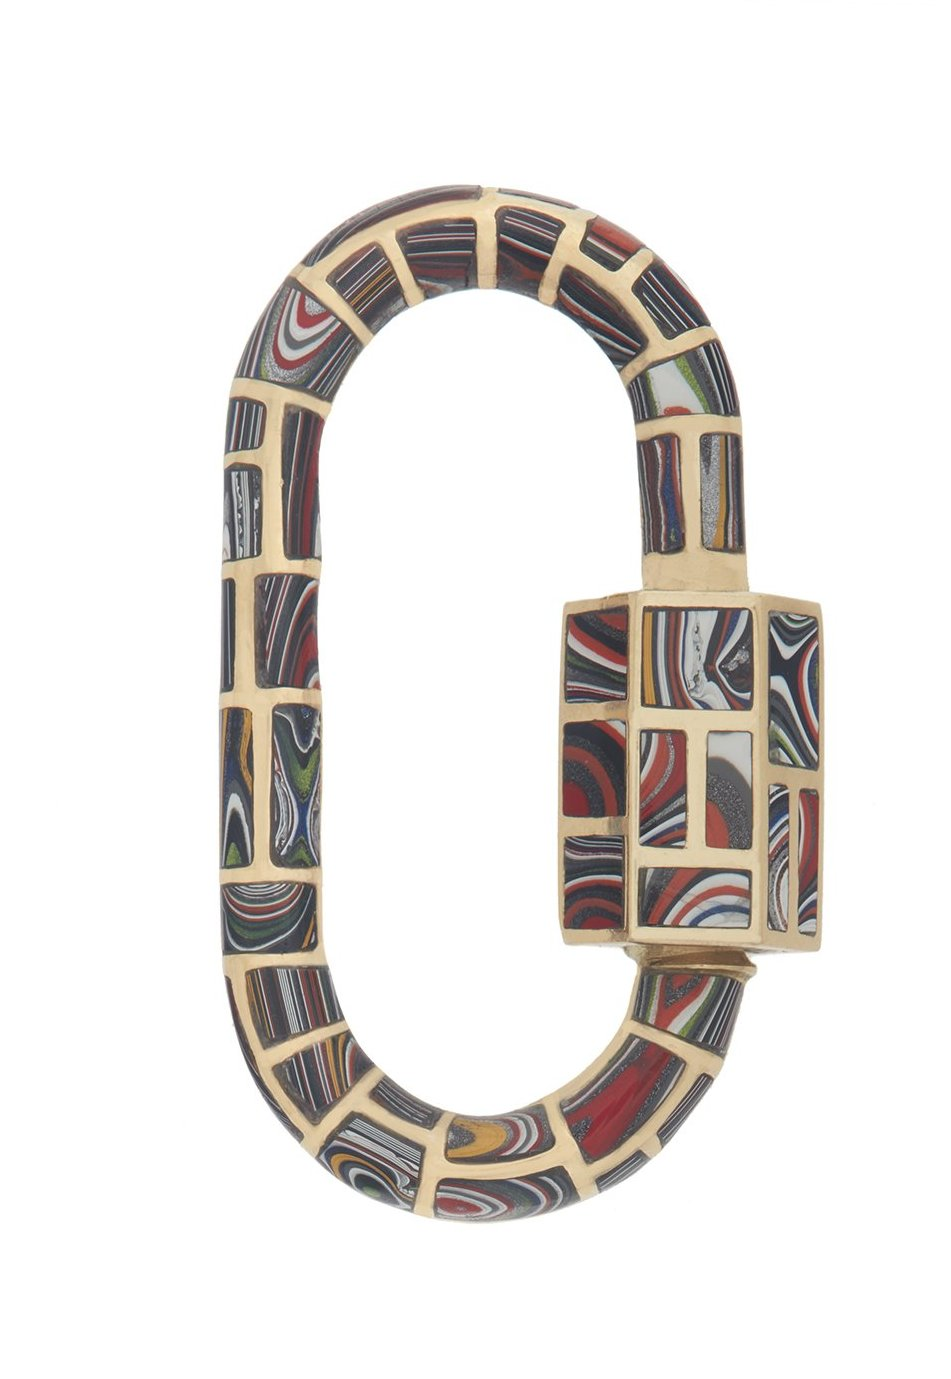 All Inlay Lock with Fordite